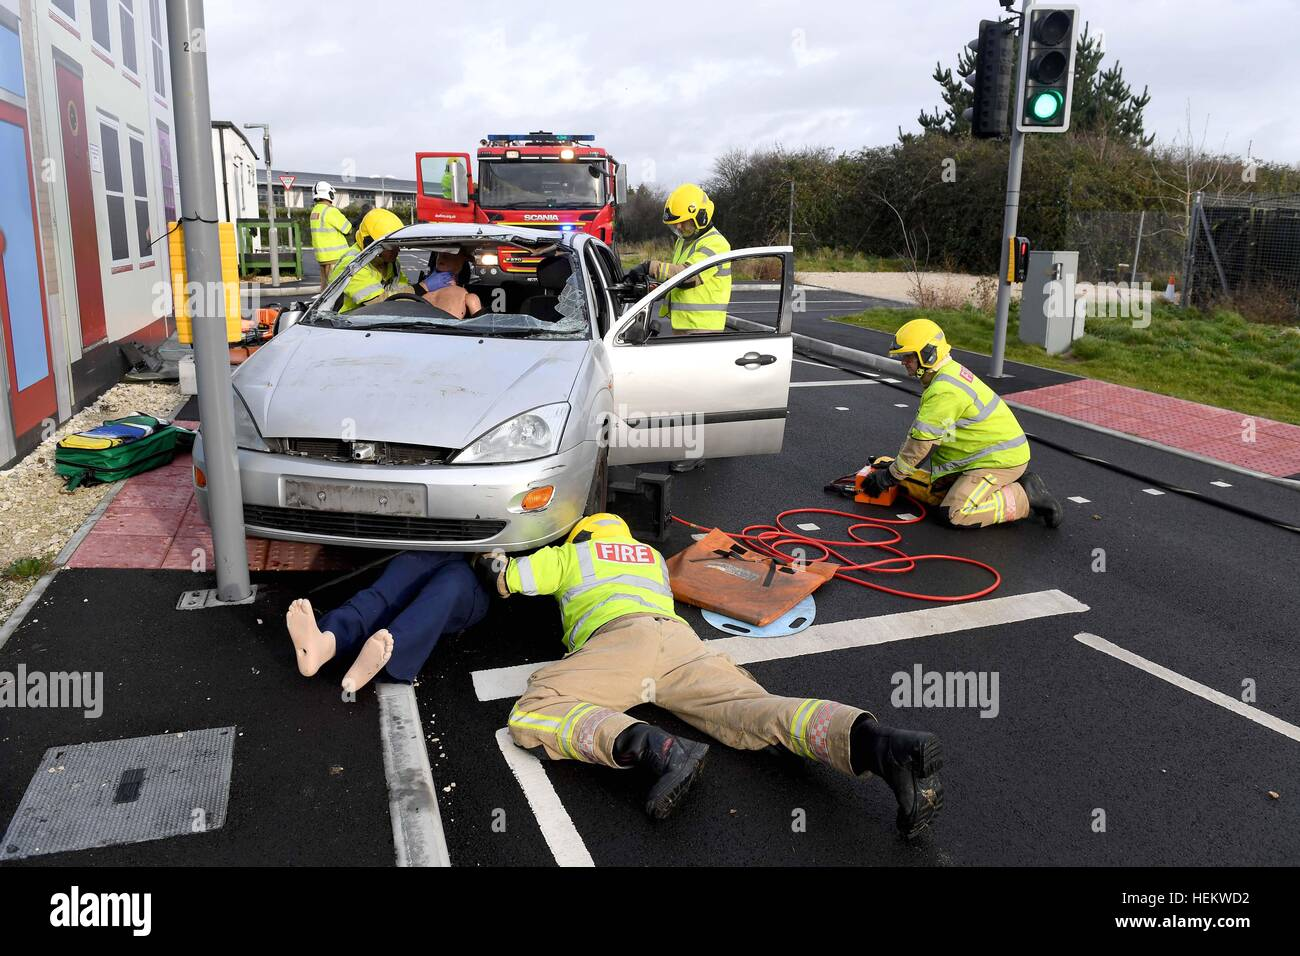 "Firefighters working at the scene of an accident demonstration, UK. ""Car crash"" scene, RTA or RTC, Crashed car with Stock Photo"